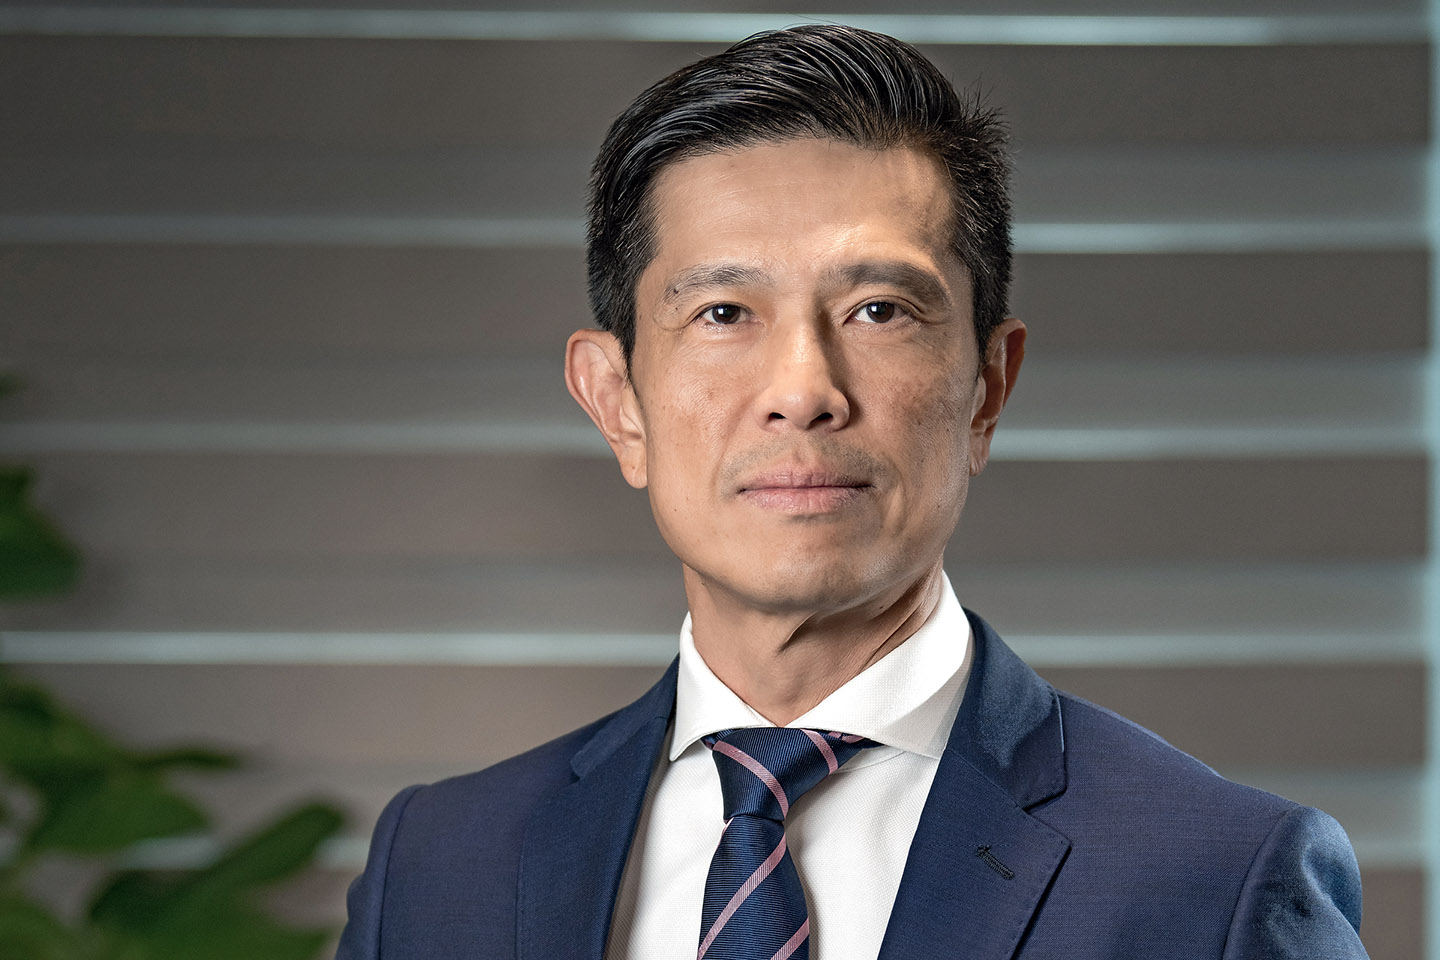 Bennett Neo, CEO of Saigon Beer Alcohol Beverage Corporation